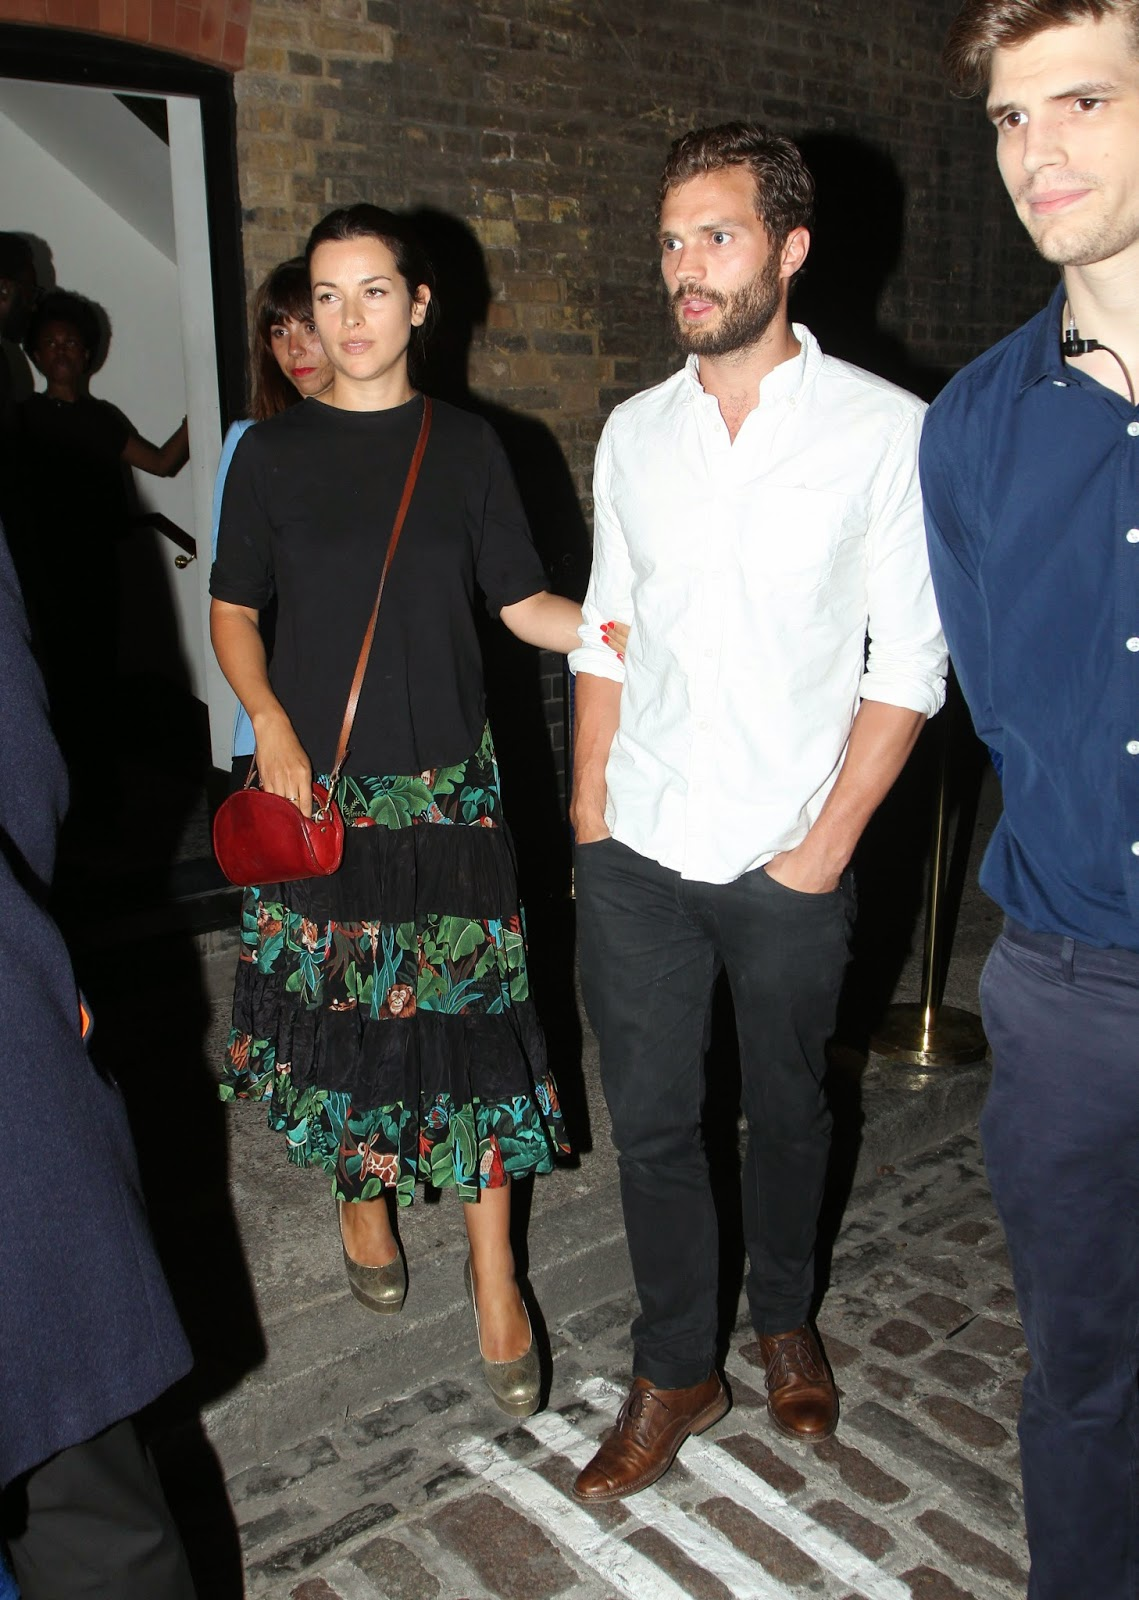 Jamie Dornan was seen out with